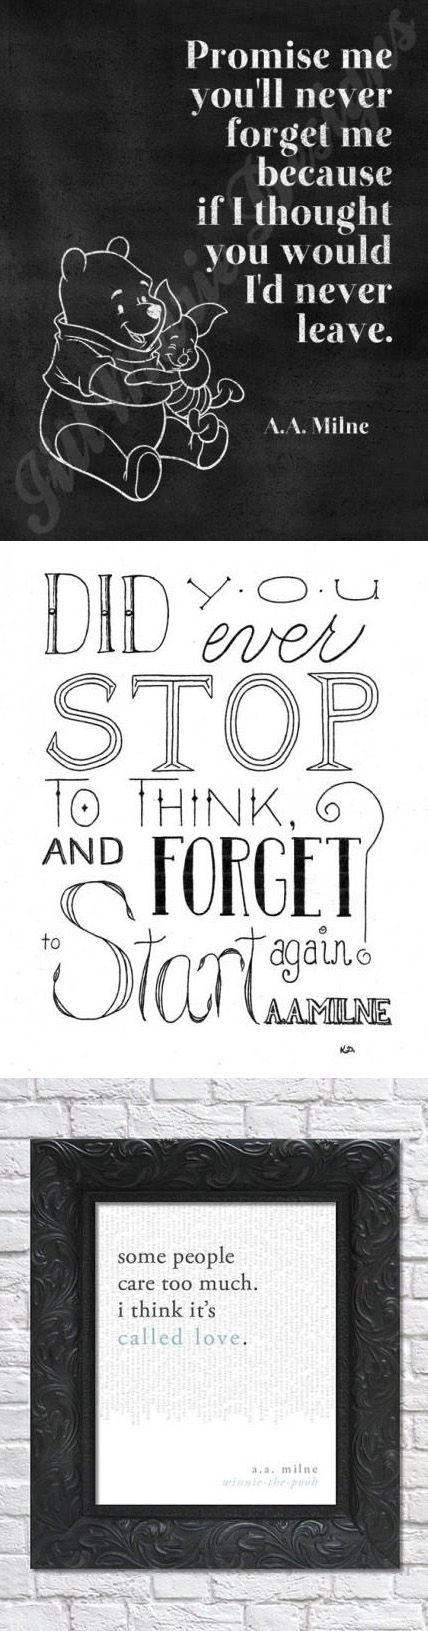 TheRetroInc on Etsy Famous quotes by A.A. Milne, author of Winnie the Pooh.